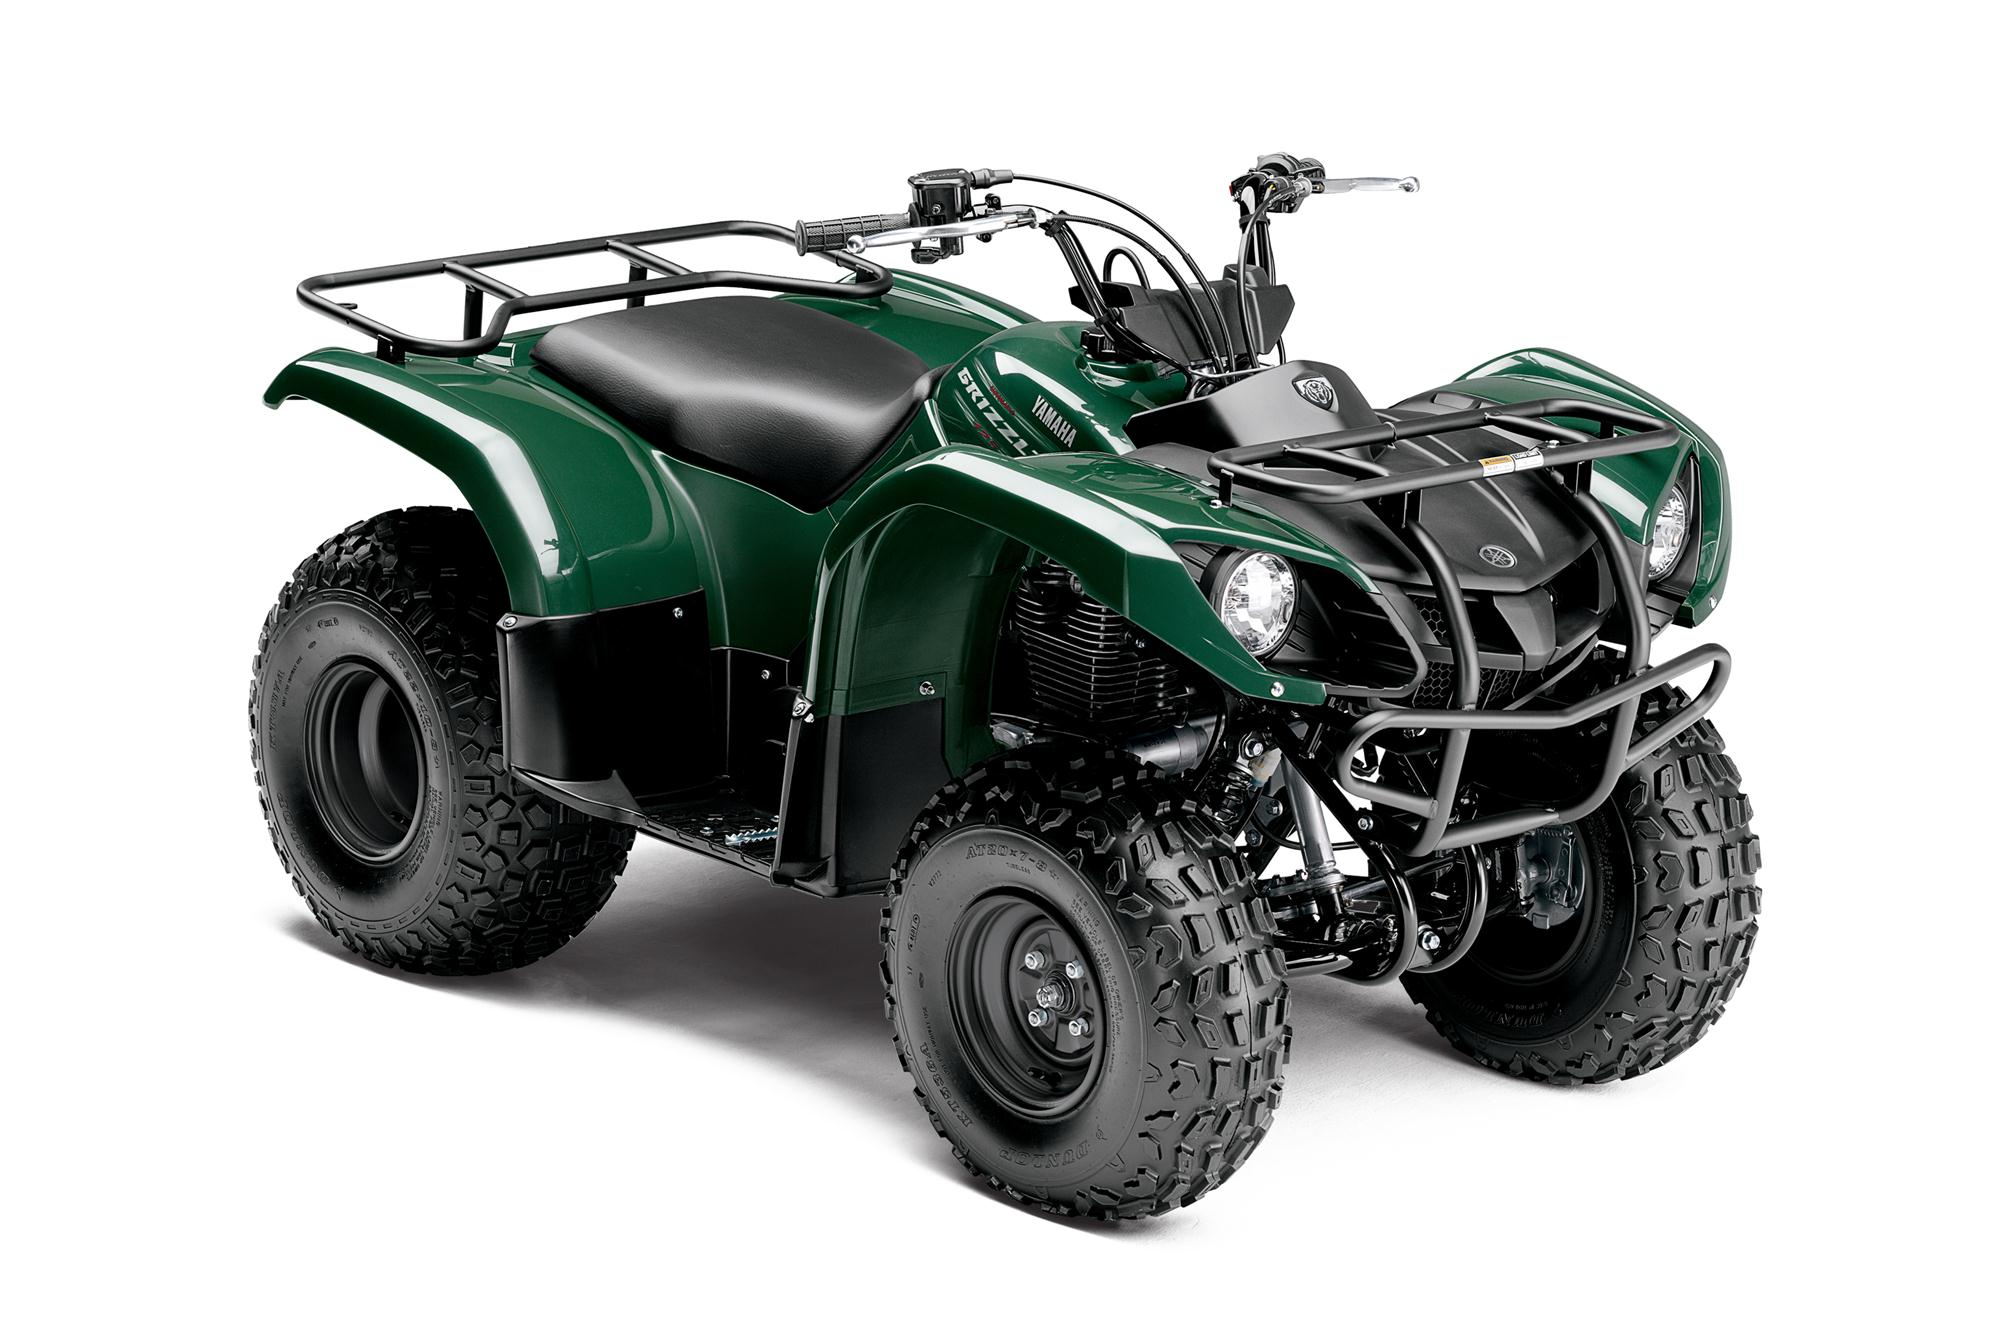 2013 yamaha grizzly 125 automatic the easy way to. Black Bedroom Furniture Sets. Home Design Ideas